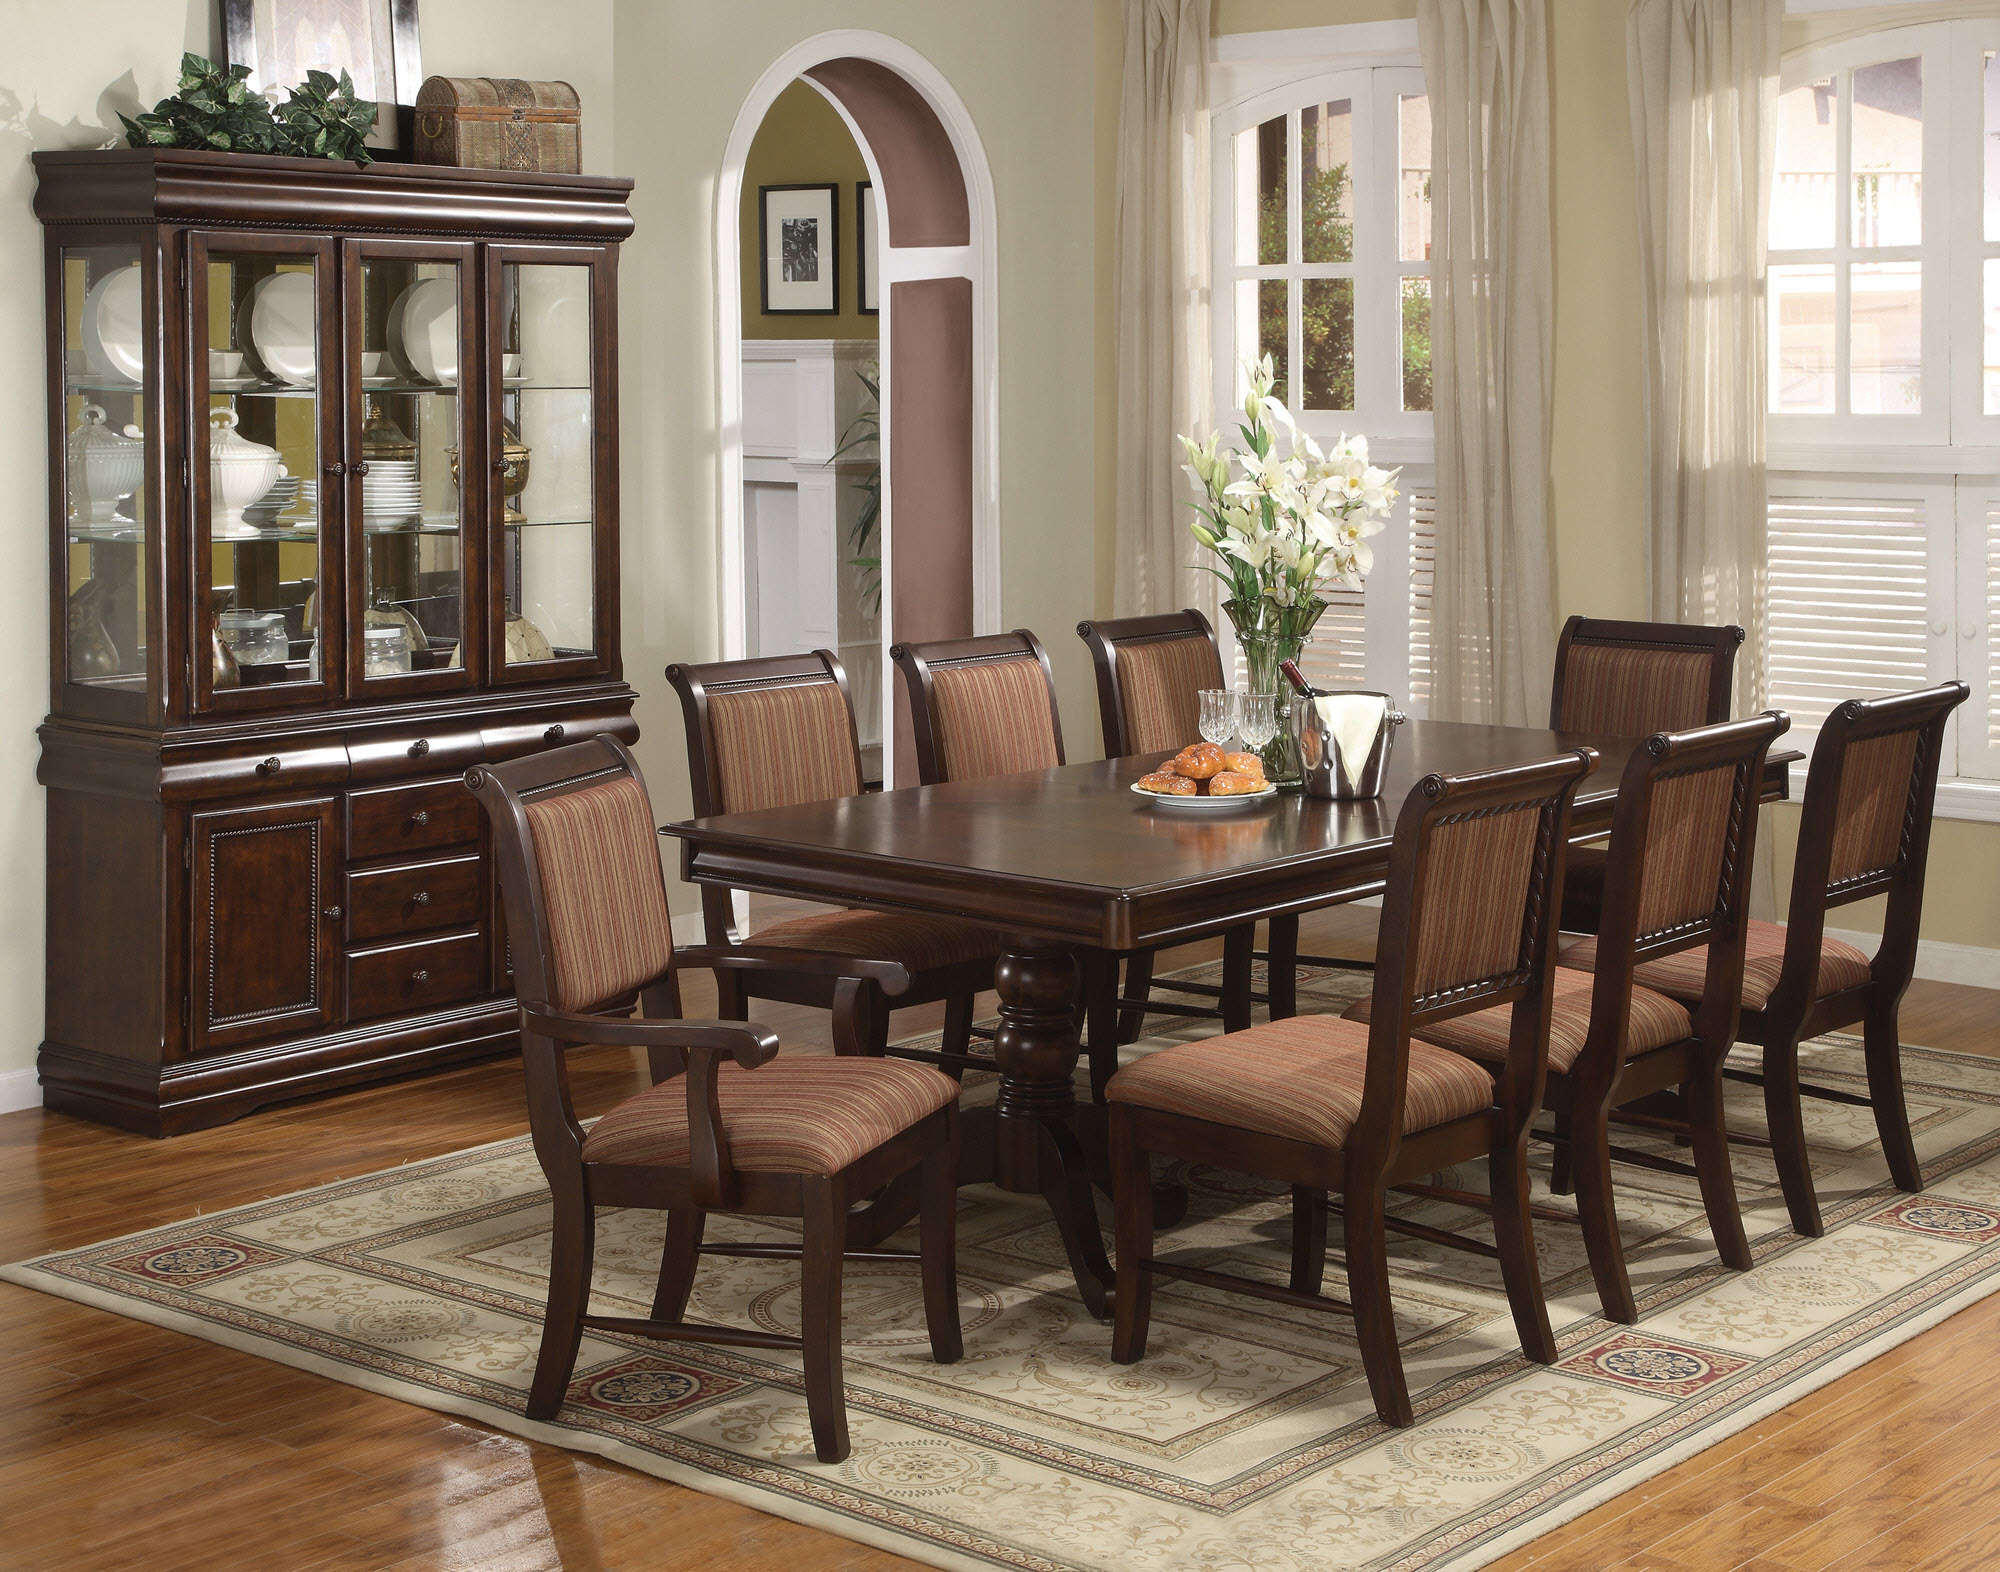 pictures of dining room sets photo - 2